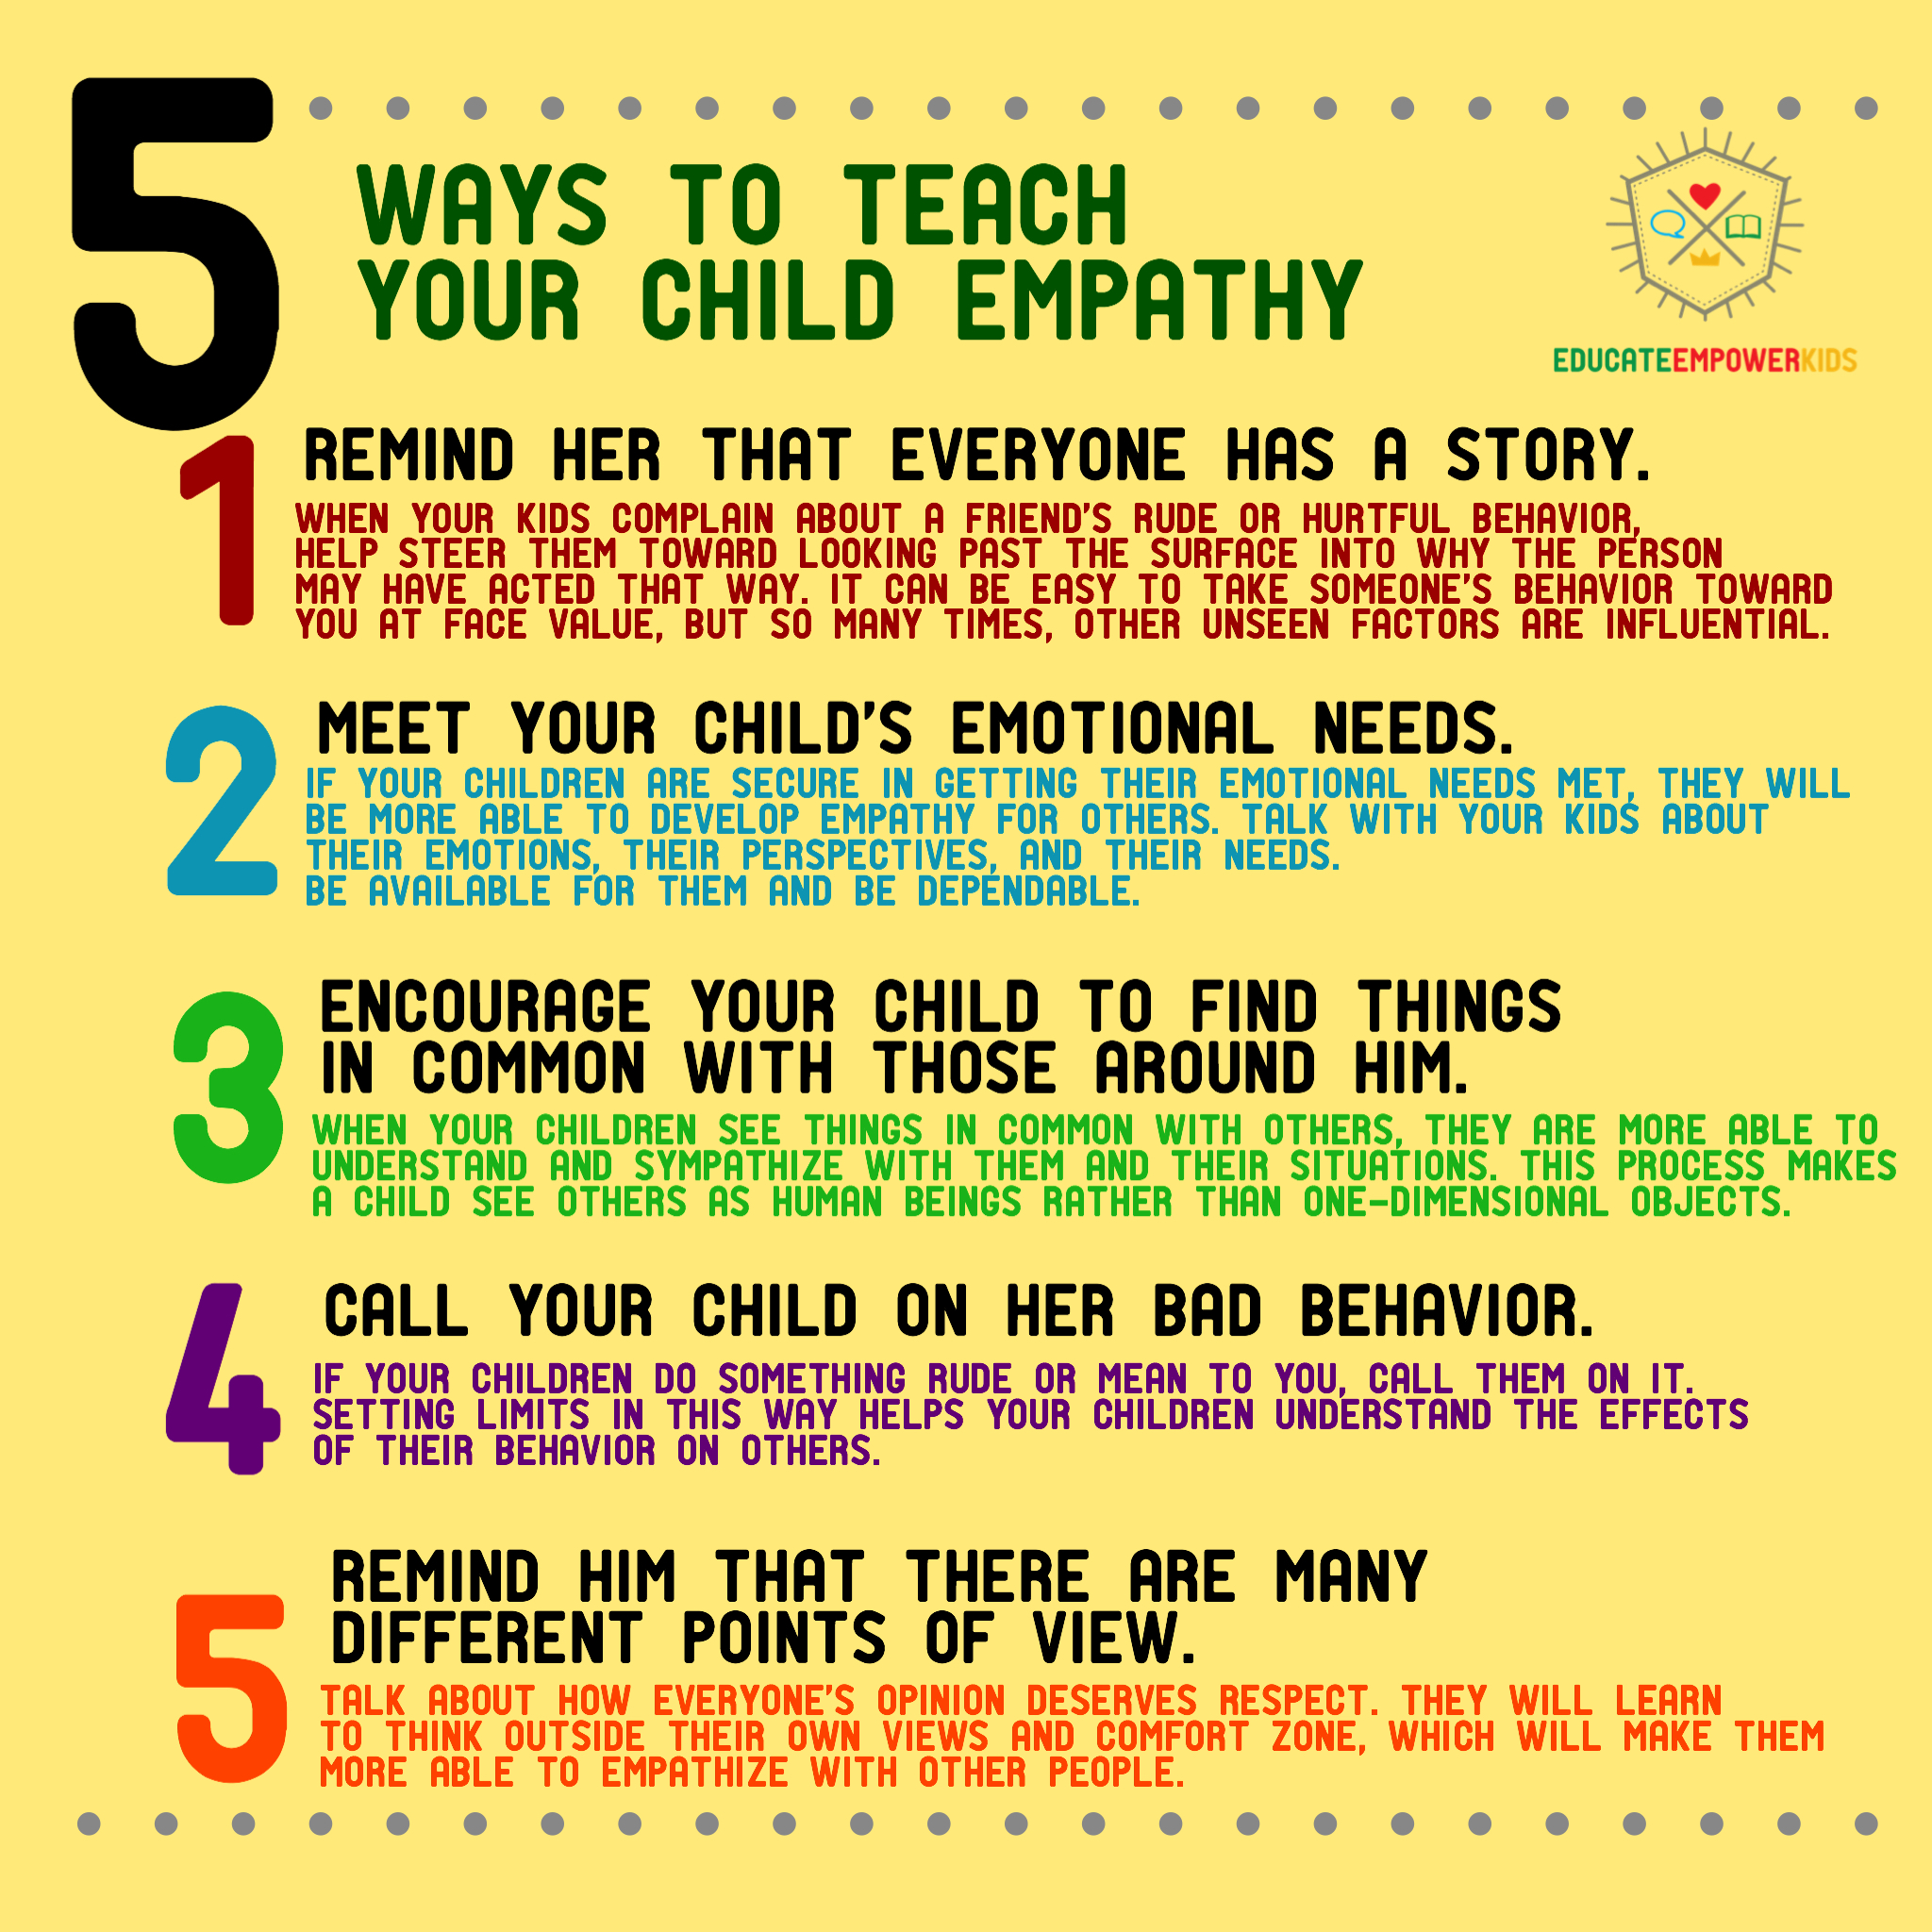 5 Ways To Teach Children Empathy